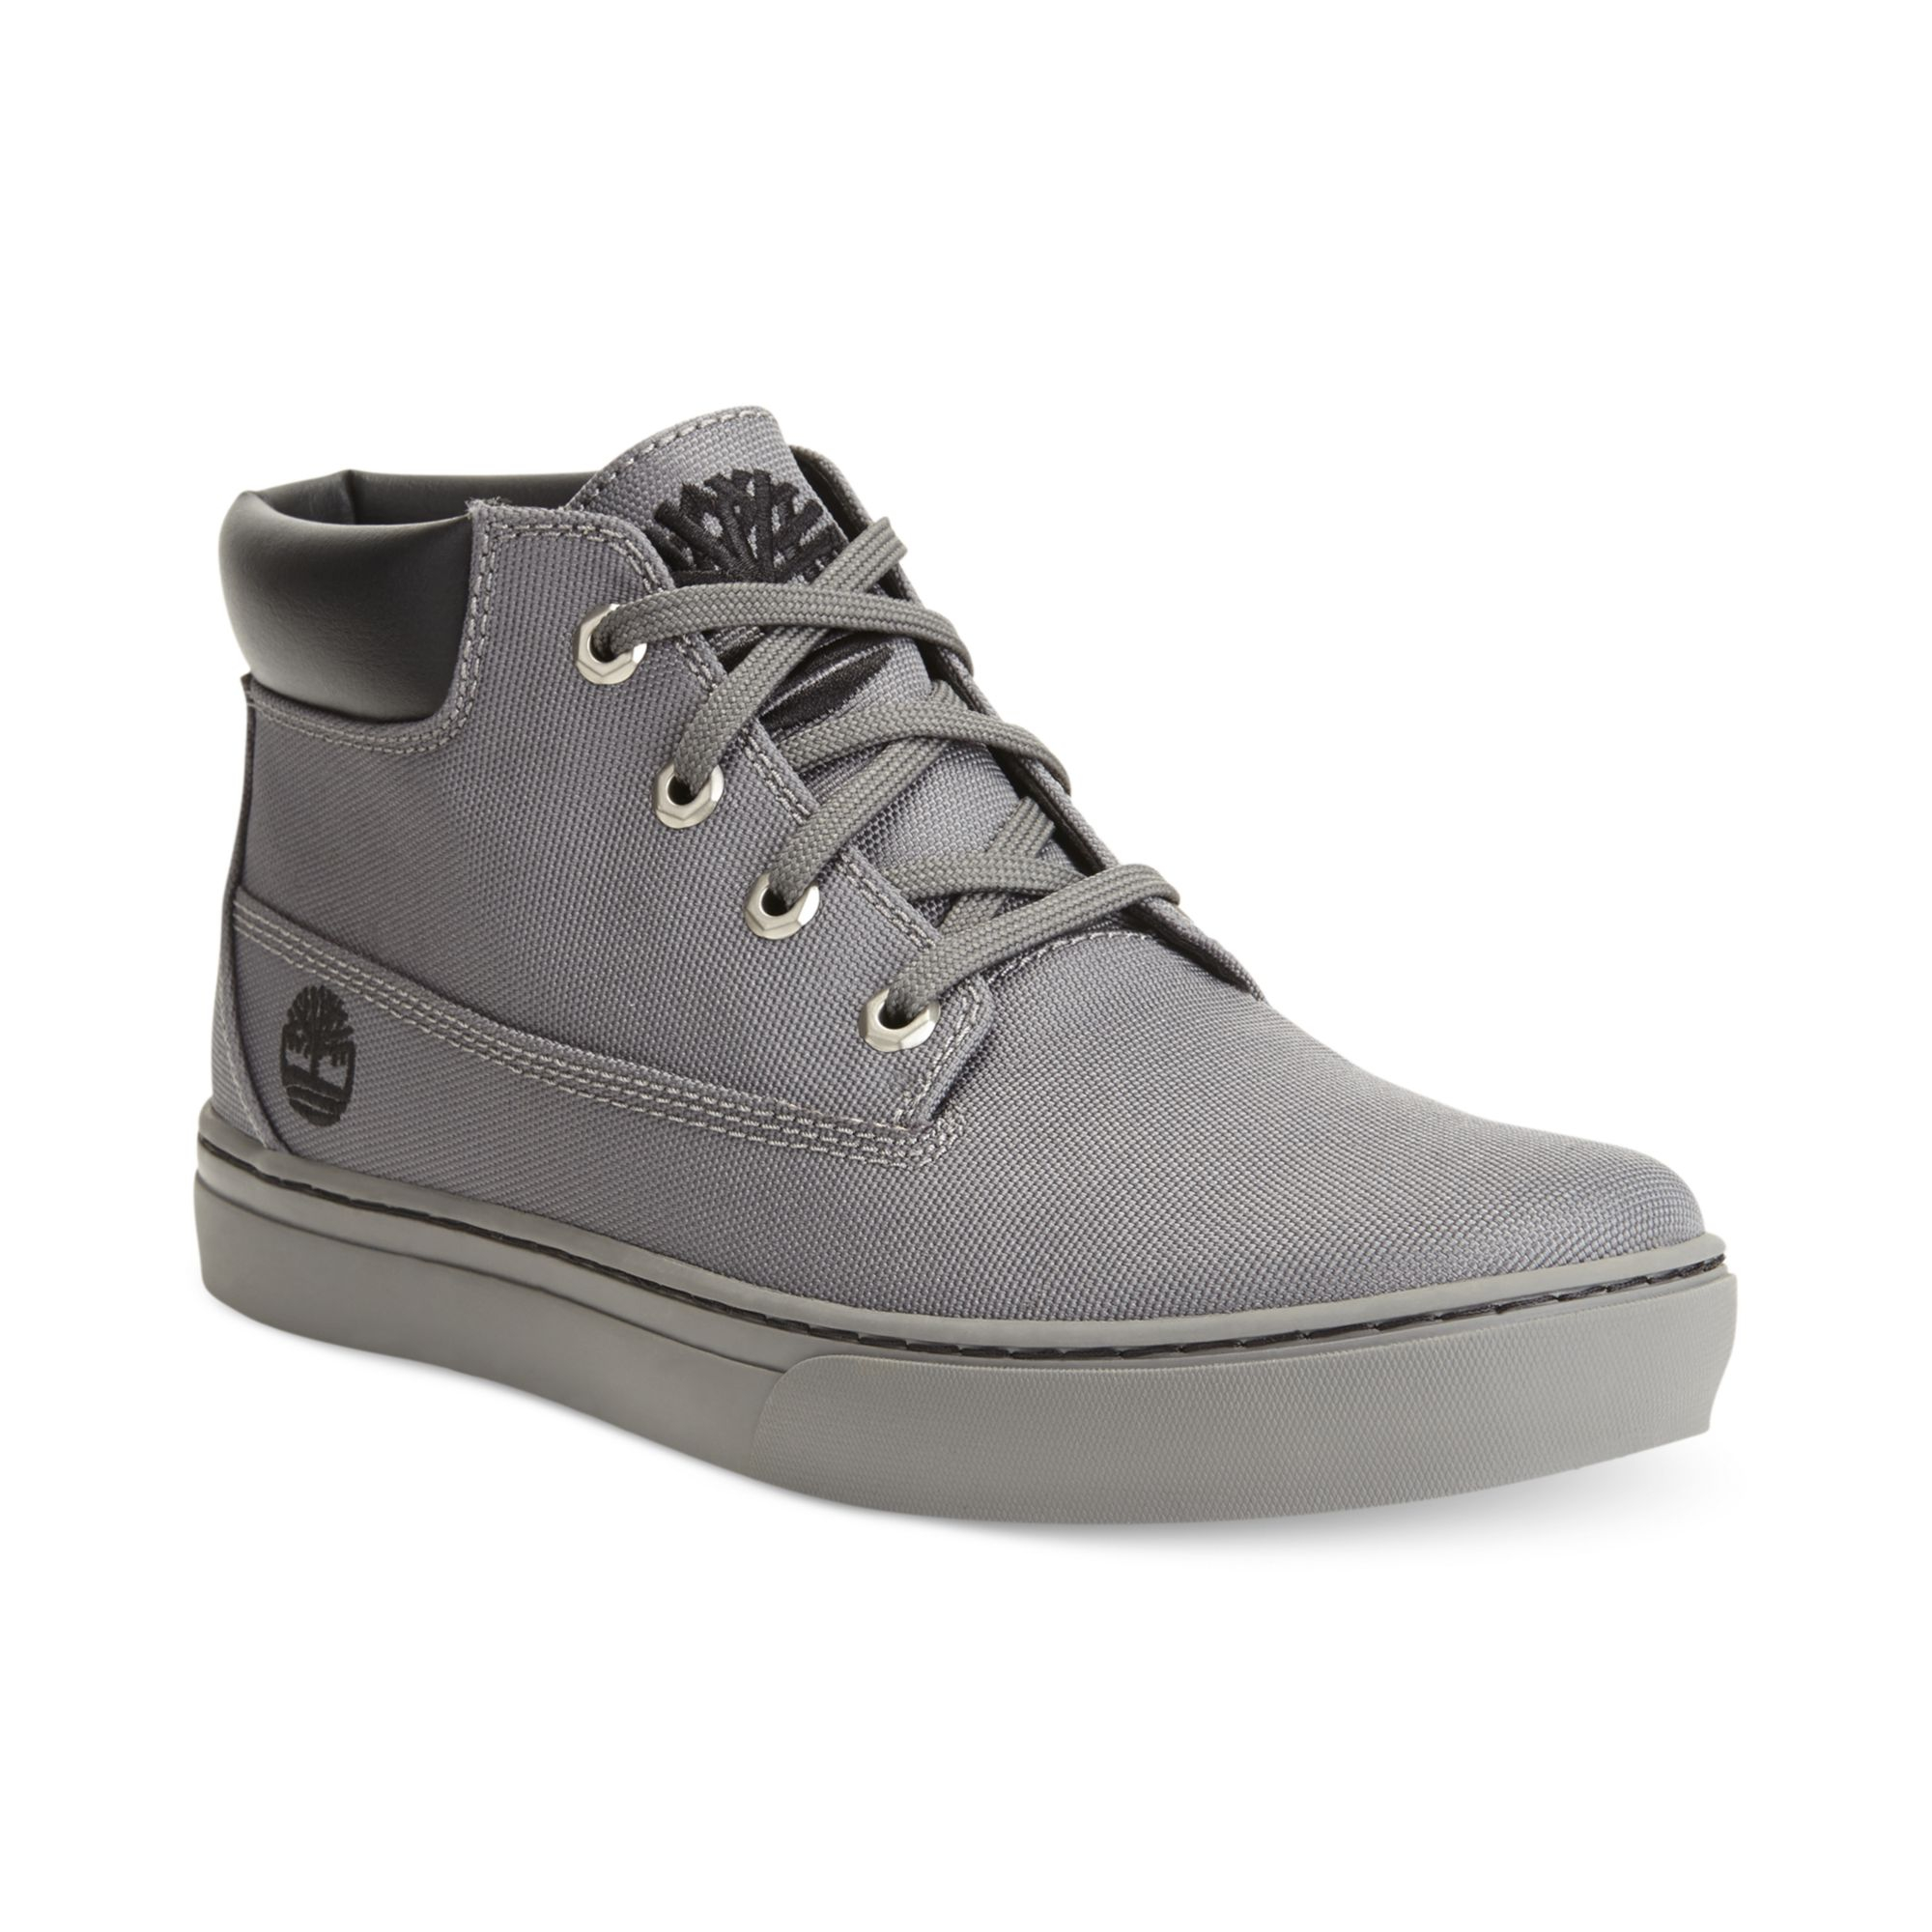 timberland 20 new market chukka boots in gray for men. Black Bedroom Furniture Sets. Home Design Ideas